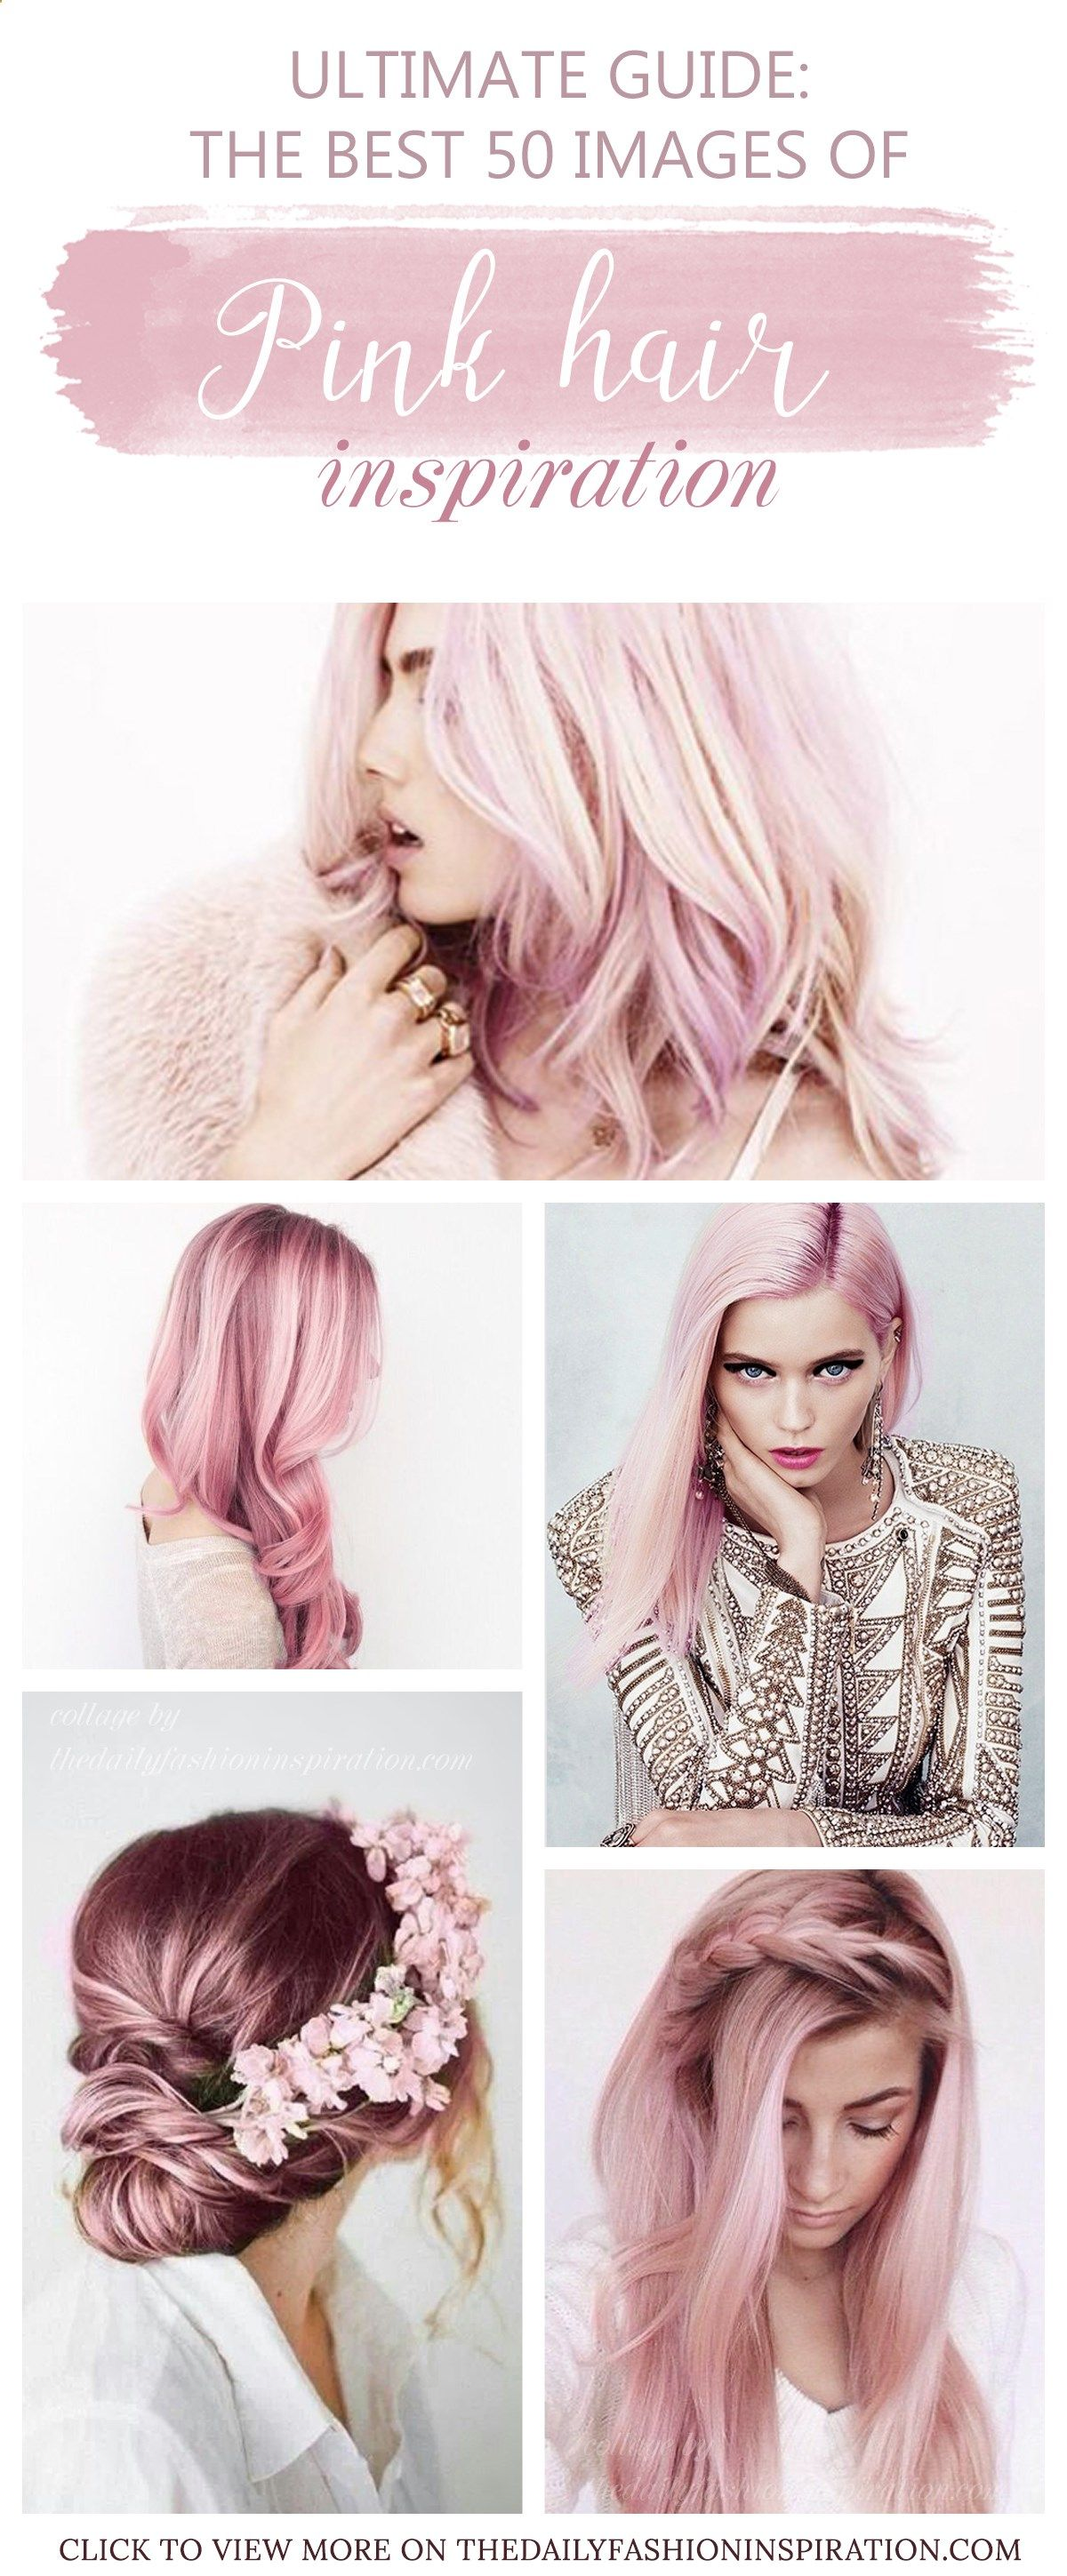 Pink hair ideas are combined in my blog post about the latest hair